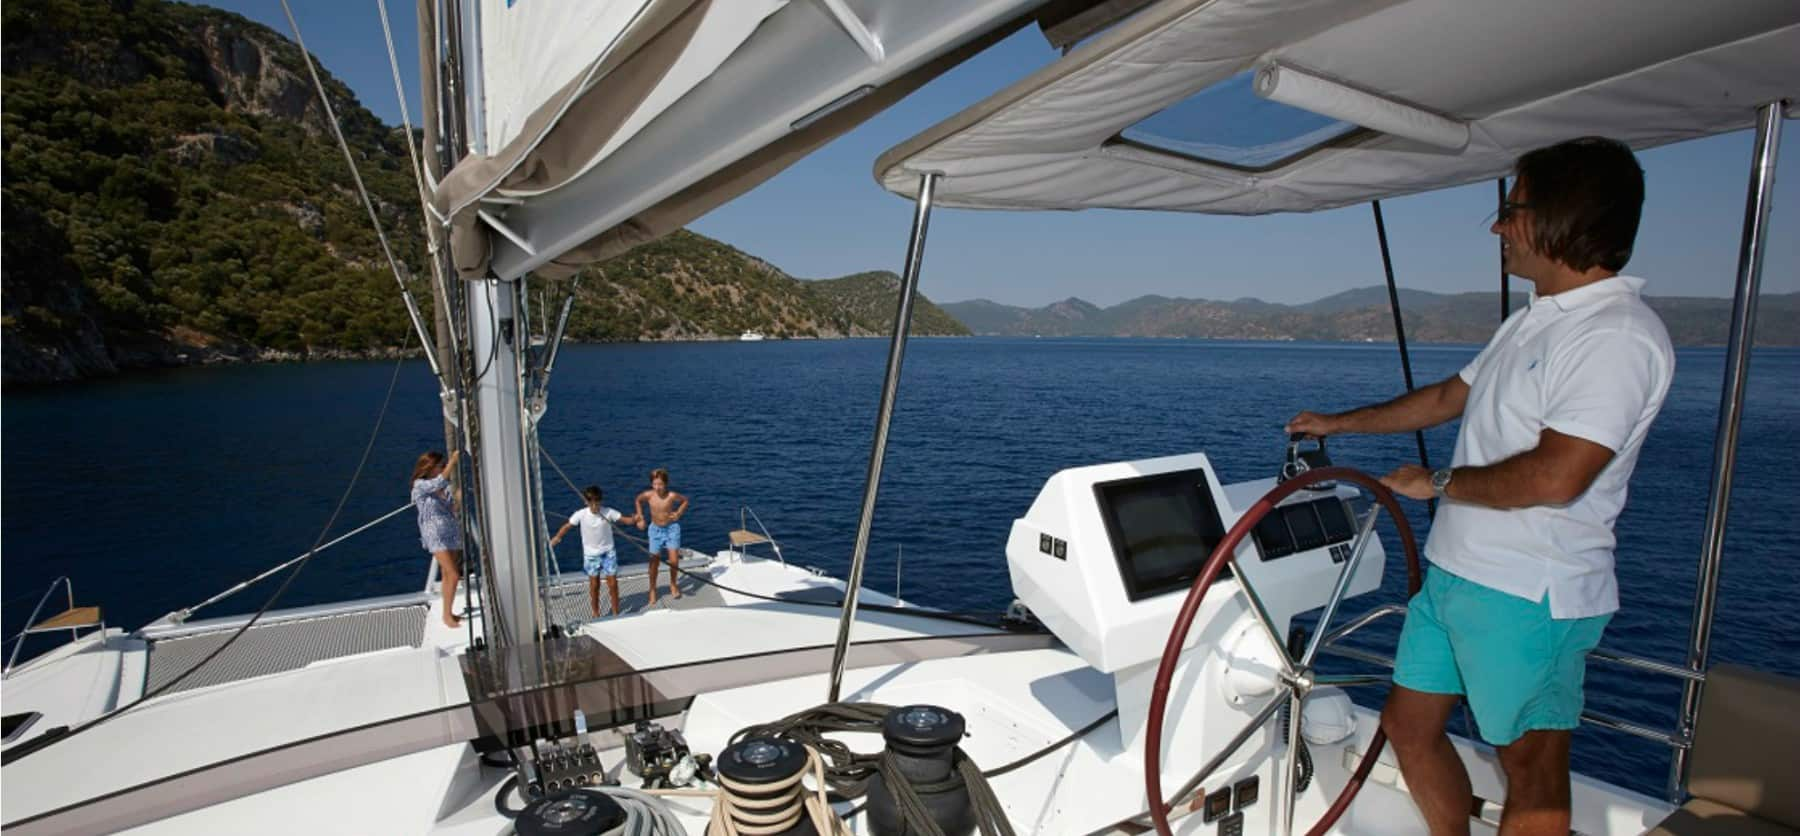 Father navigating the boat while watching his family enjoying the massive front deck of the Pajot Ipanema 58